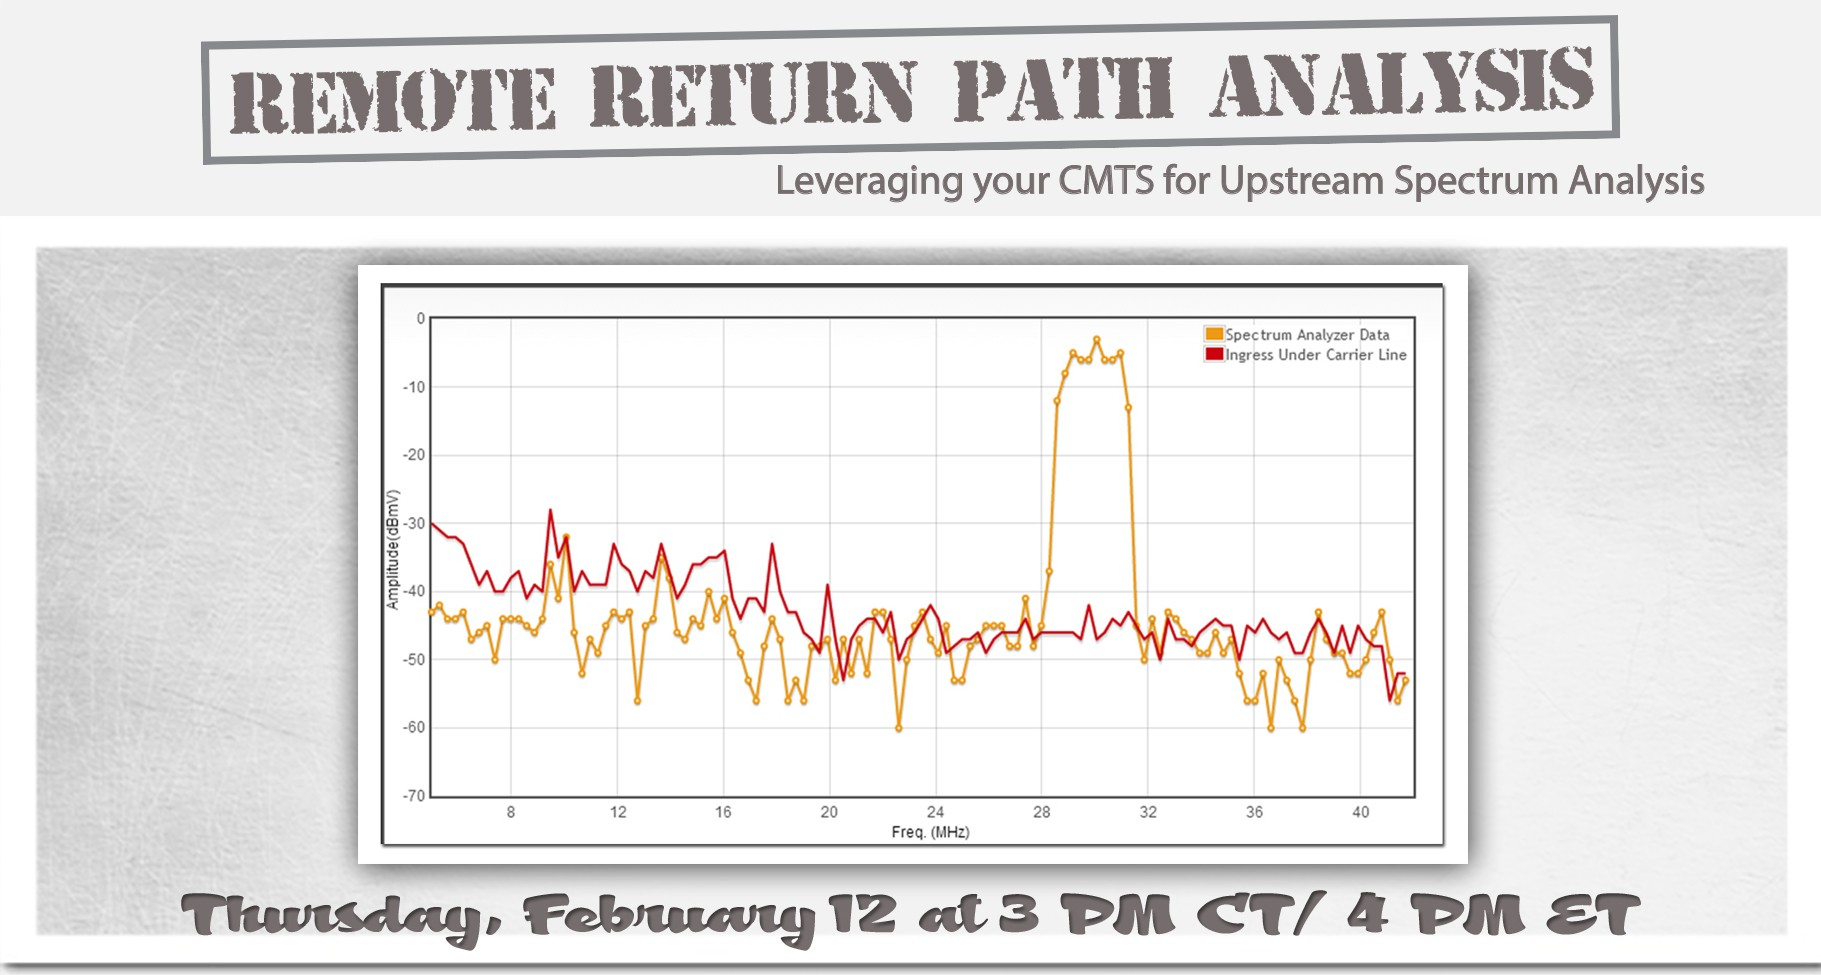 upstream spectrum analyzer webinar date